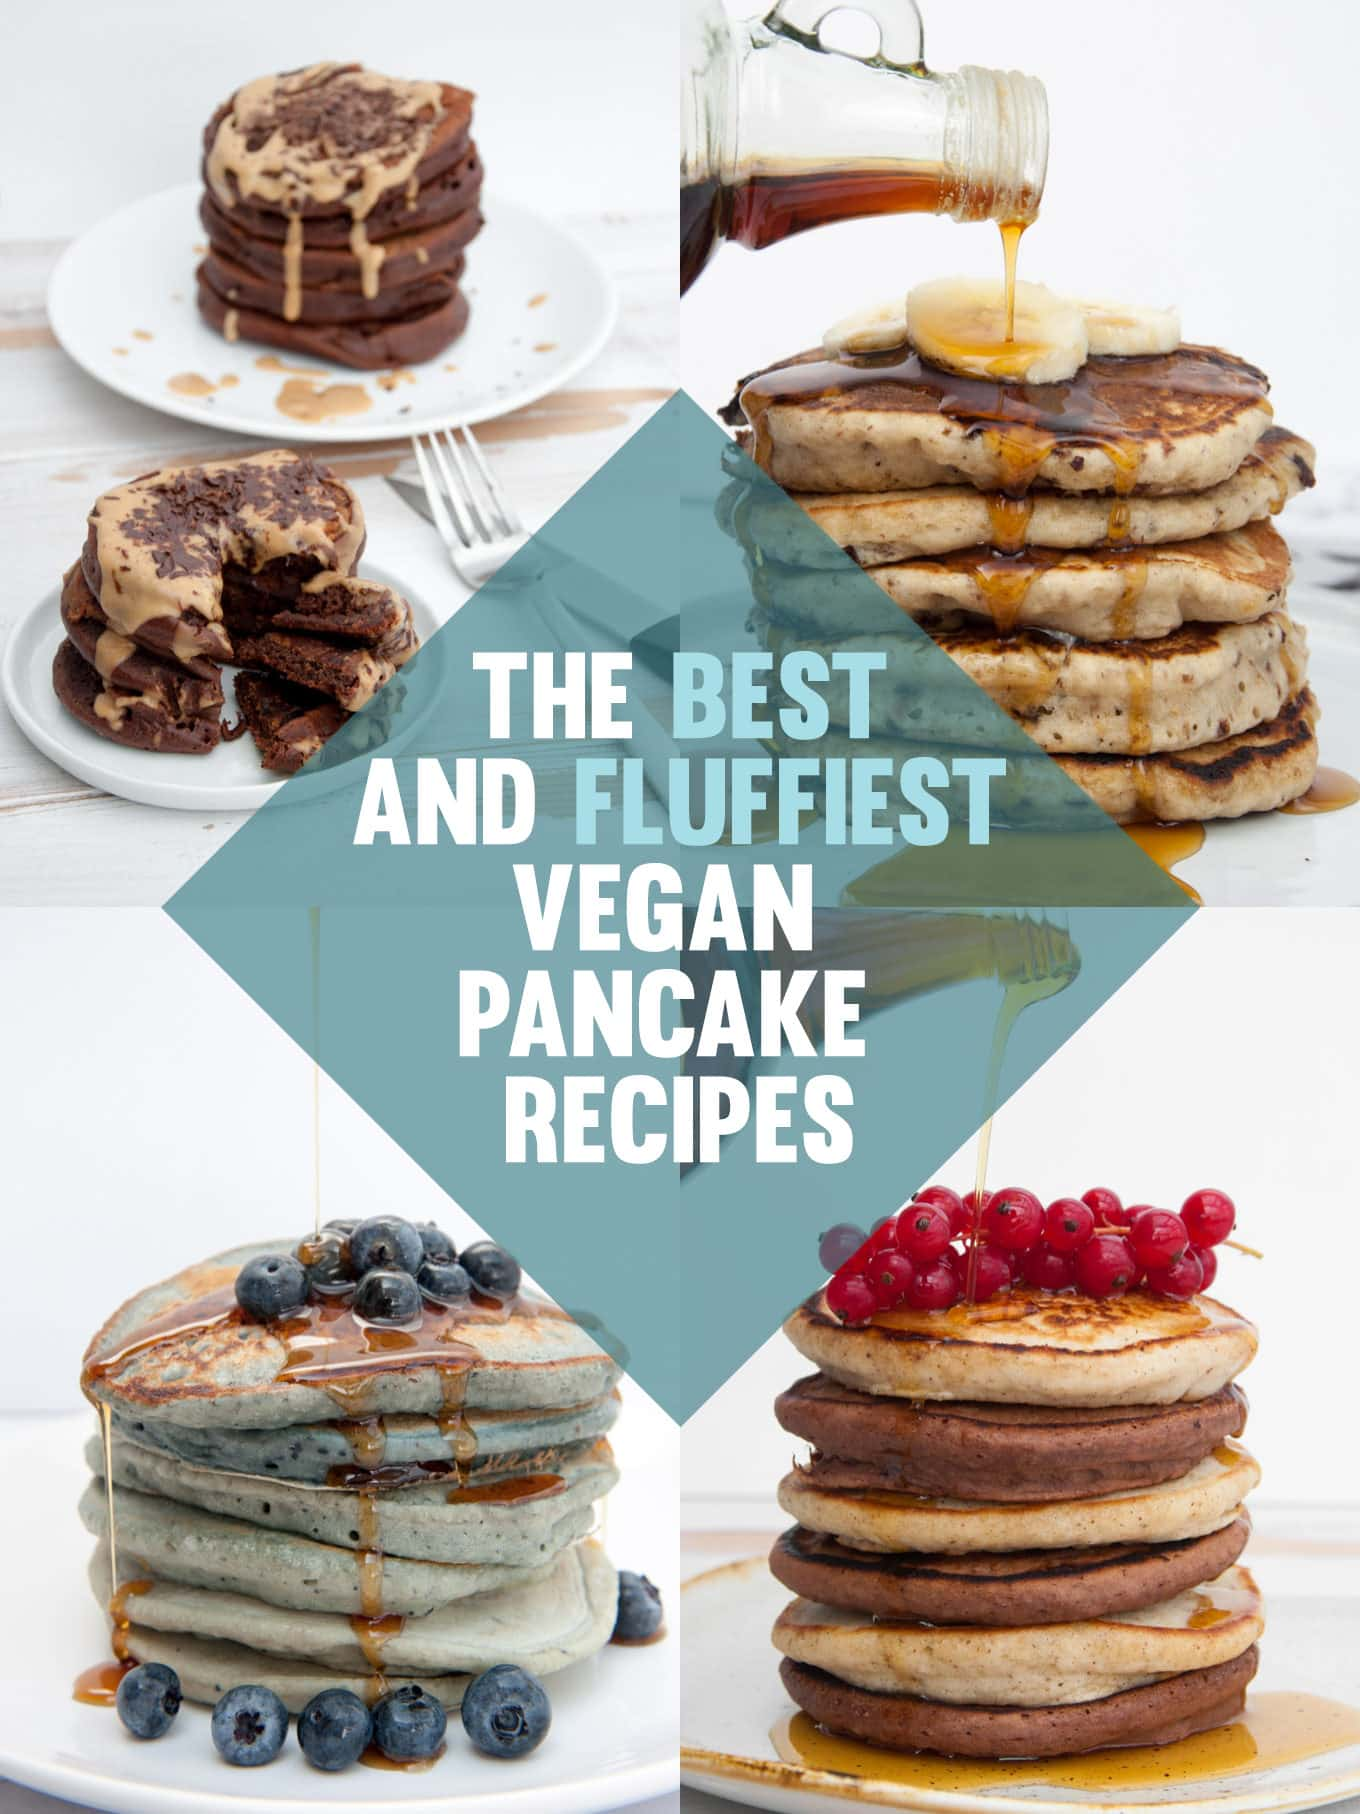 The best and fluffiest Vegan Pancake Recipes